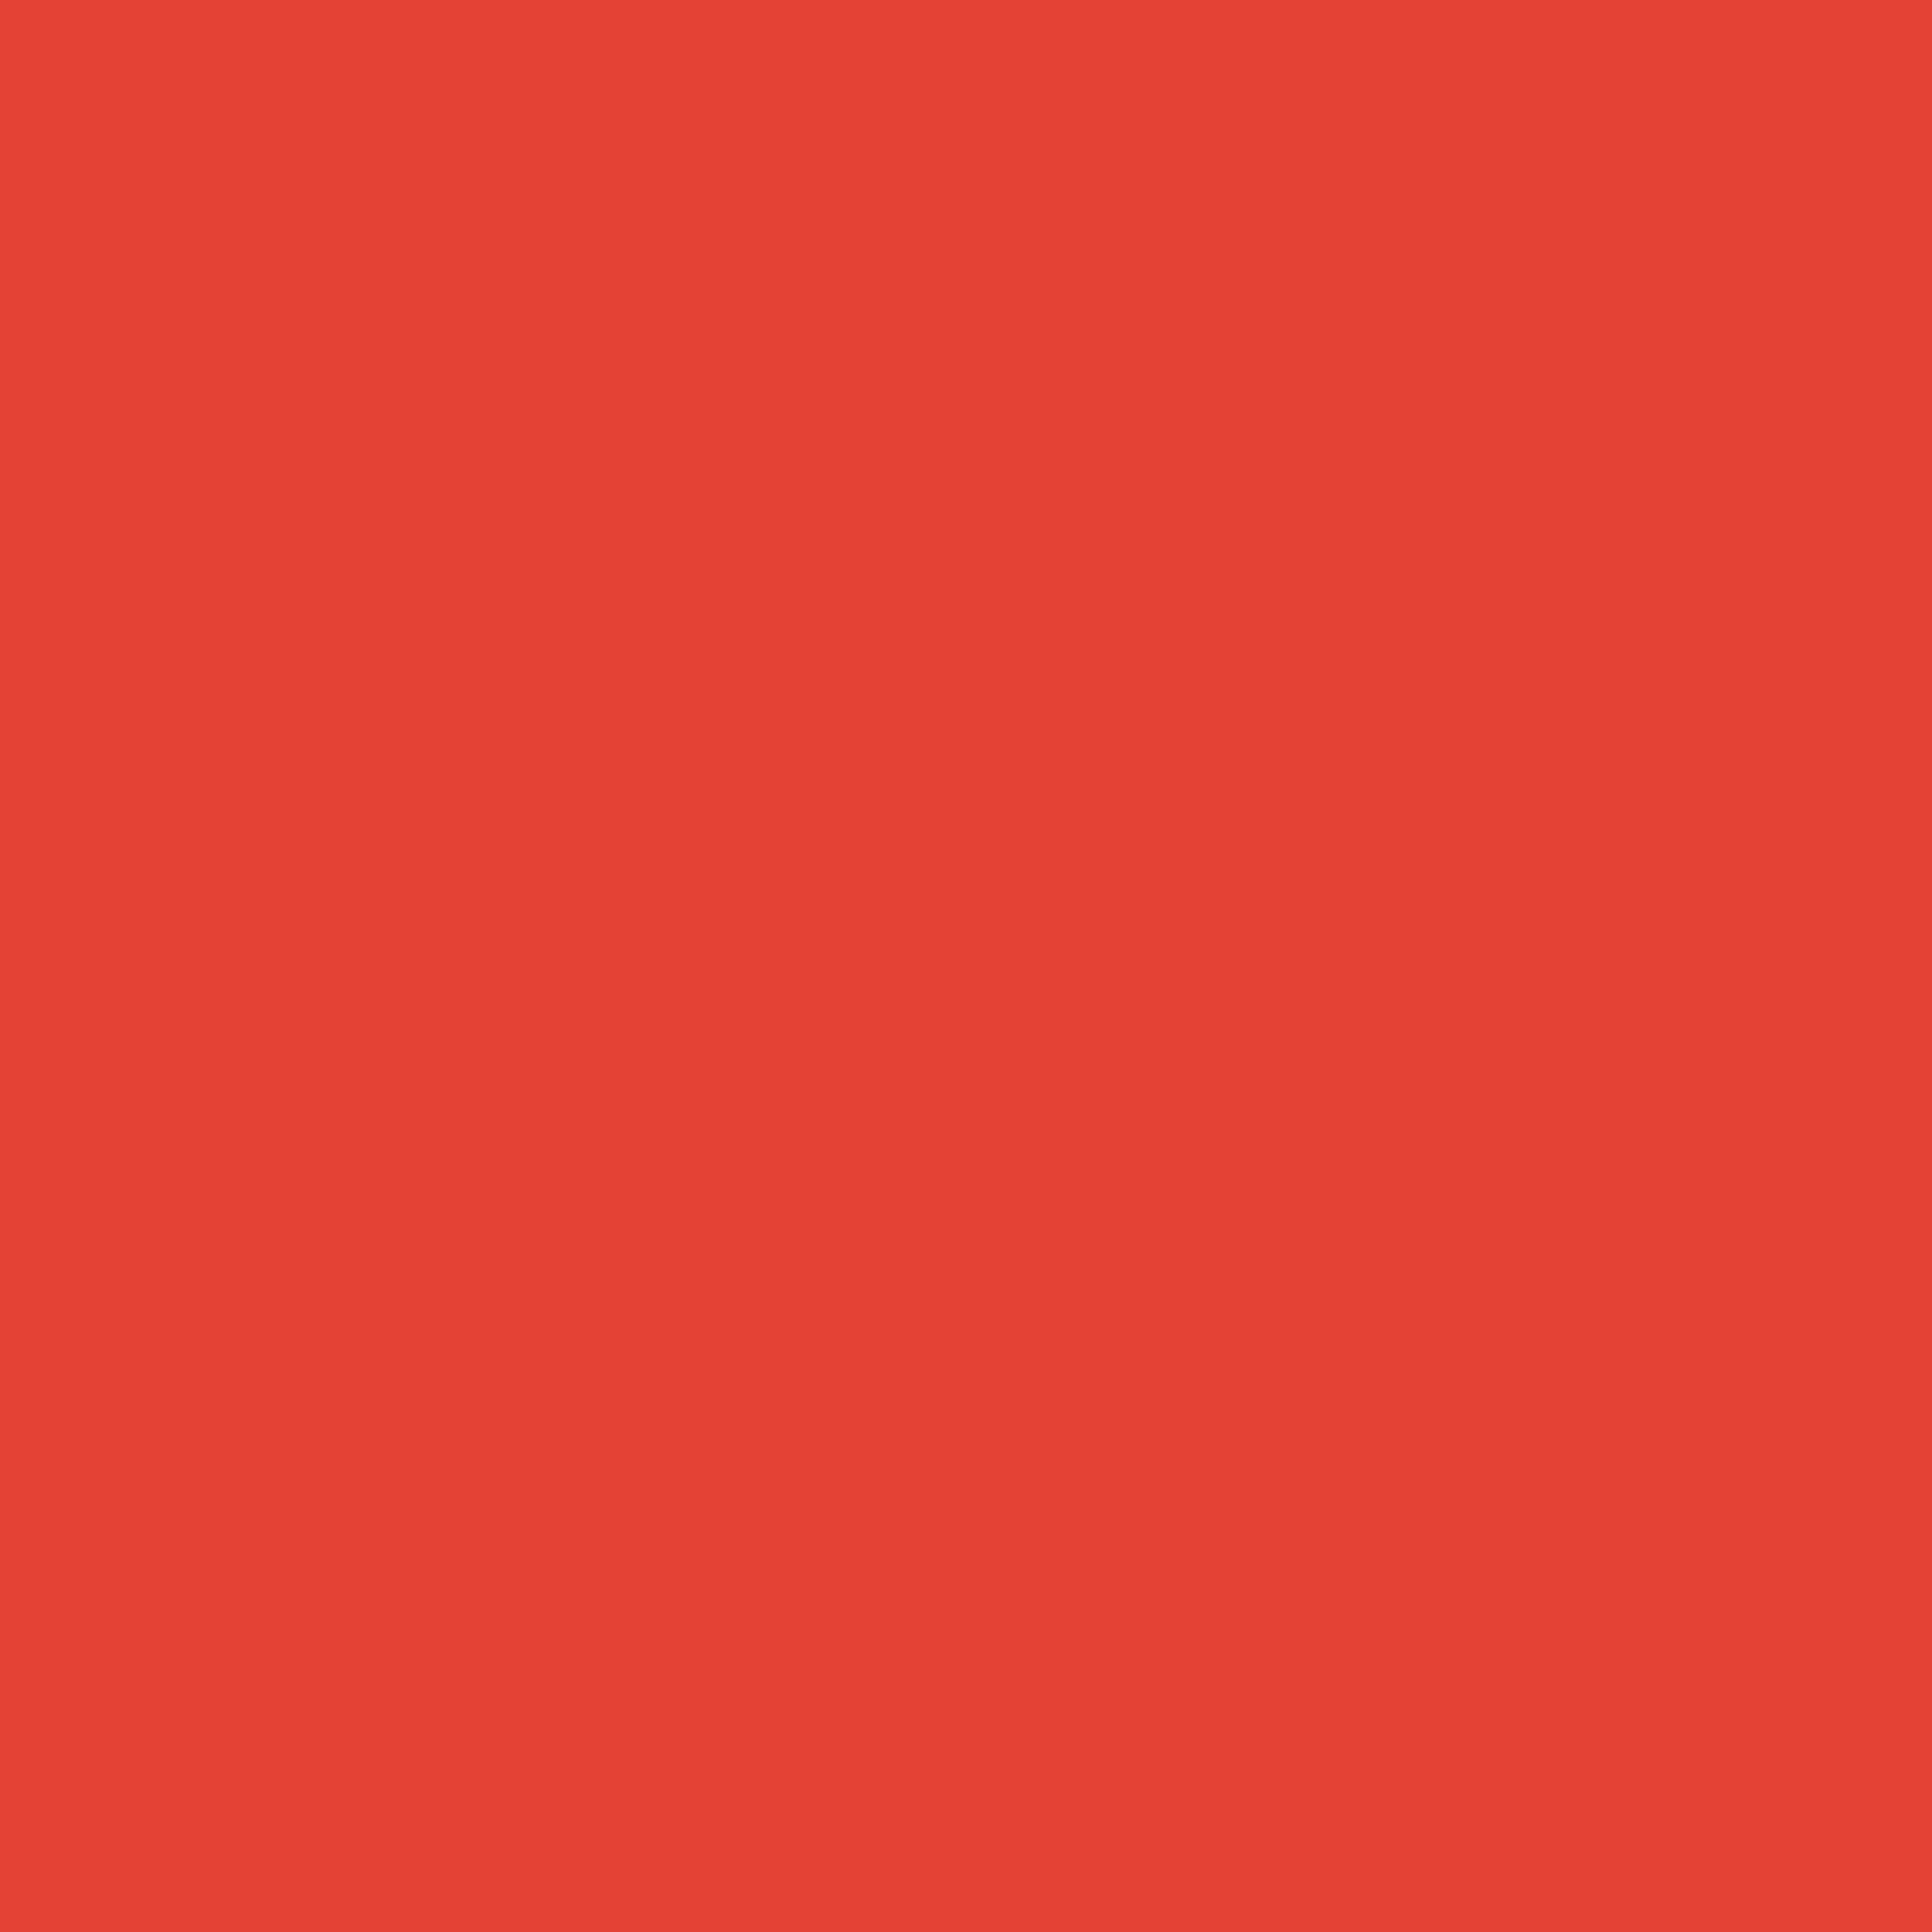 3600x3600 Cinnabar Solid Color Background